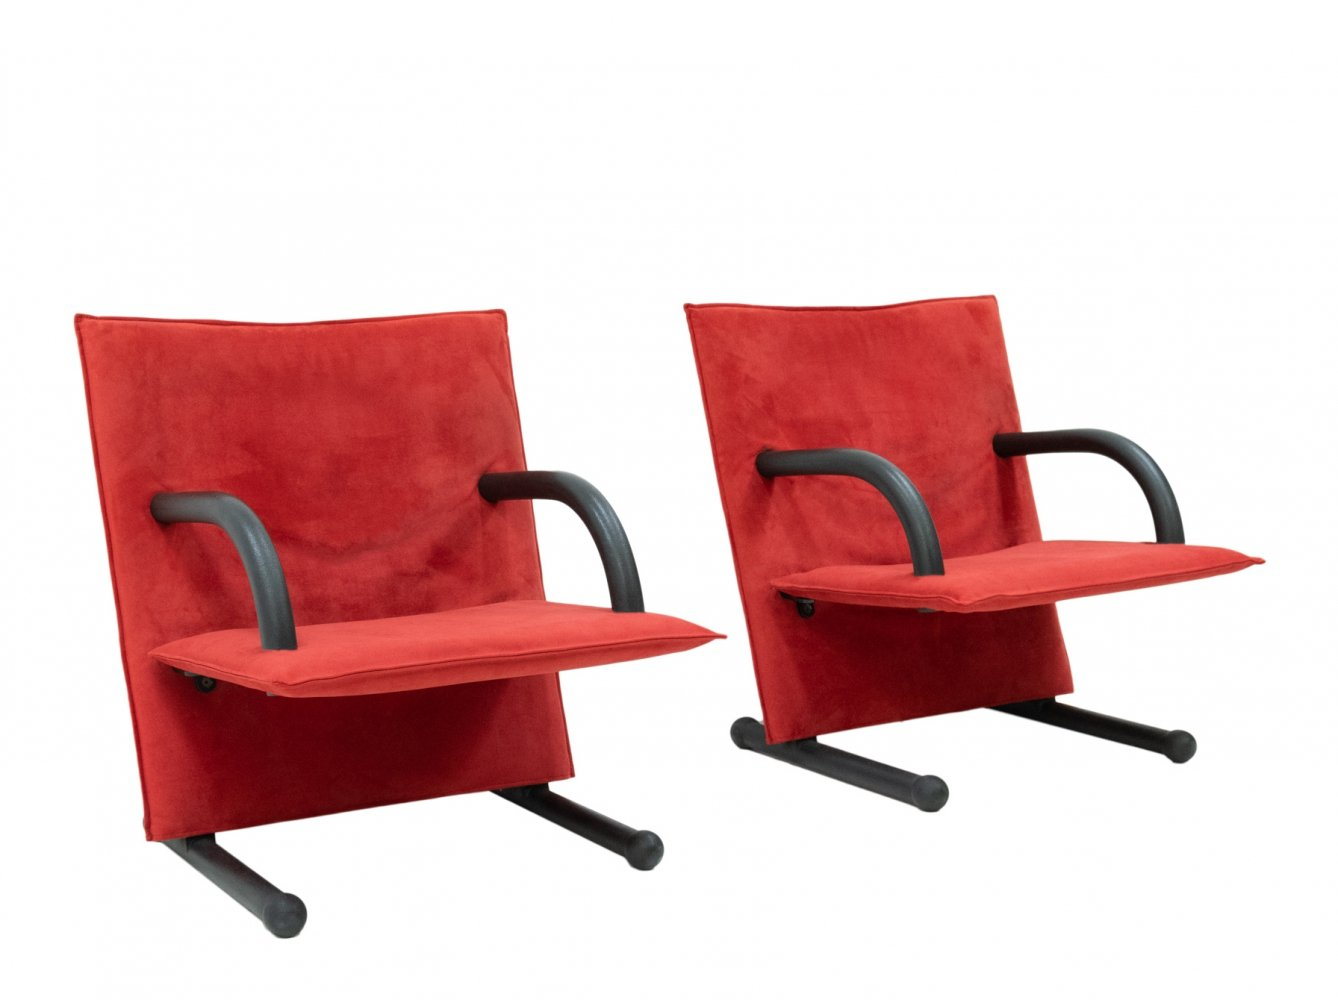 Pair of Easy Chairs by Burkhard Vogtherr for Arflex Italy, 1980s